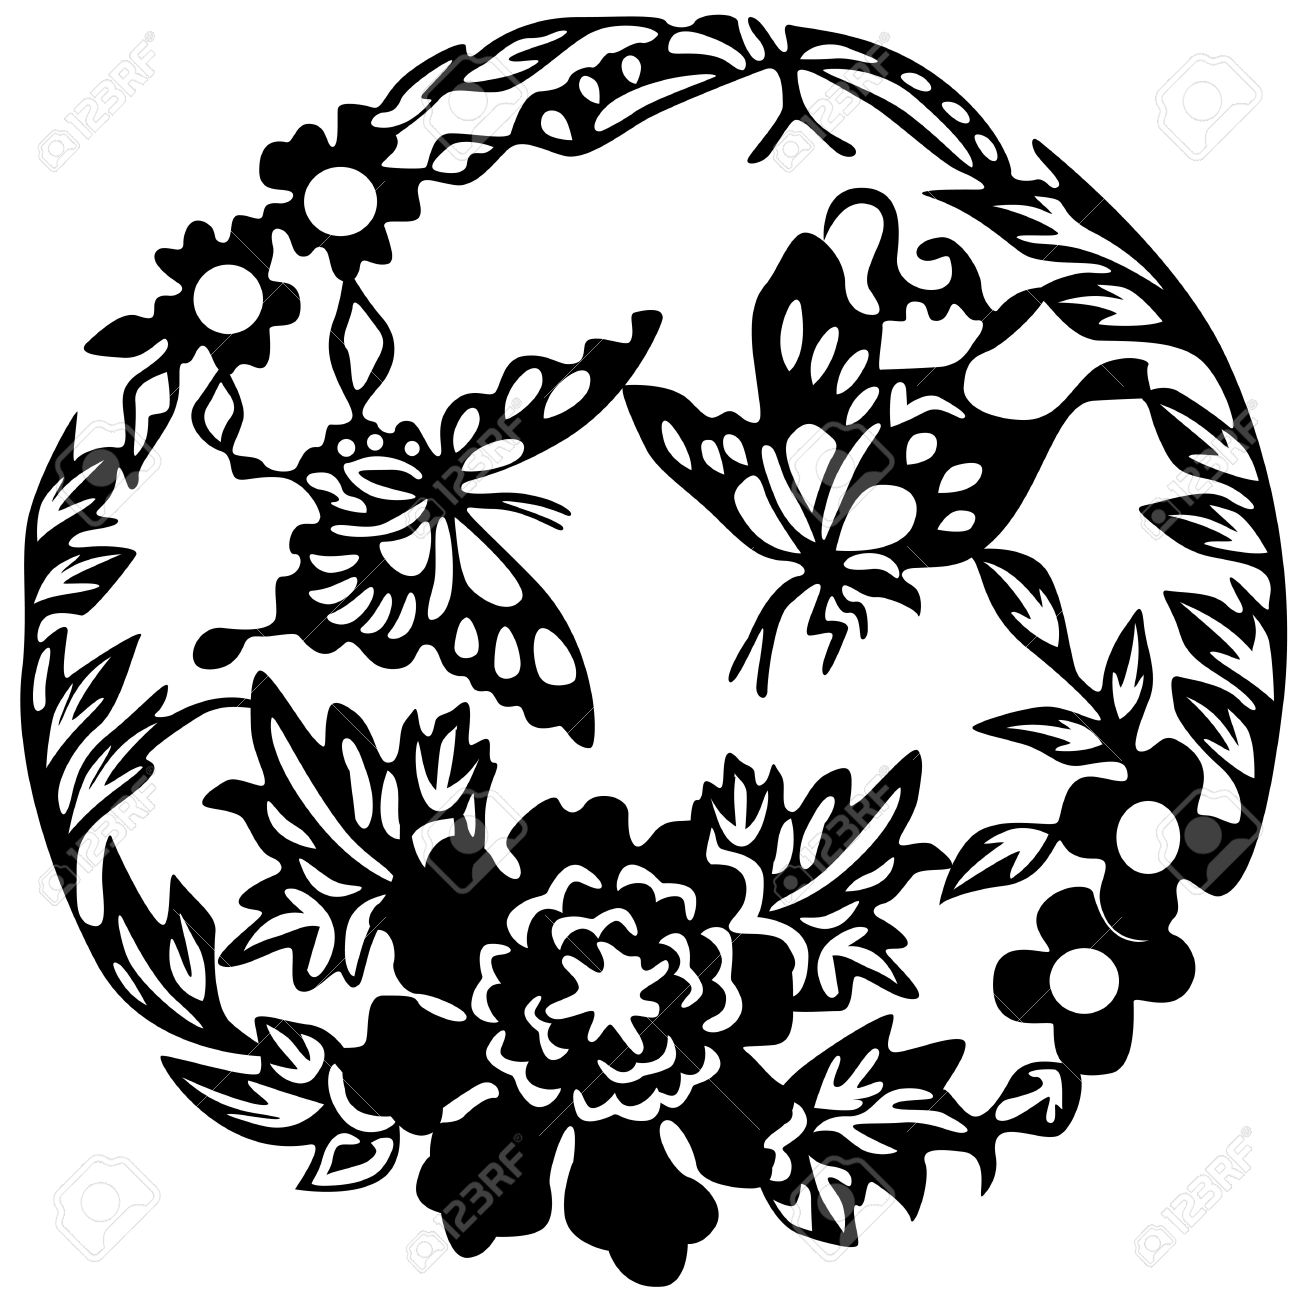 Ancient Japanese tattoo, butterflies and flowers. - 6839449